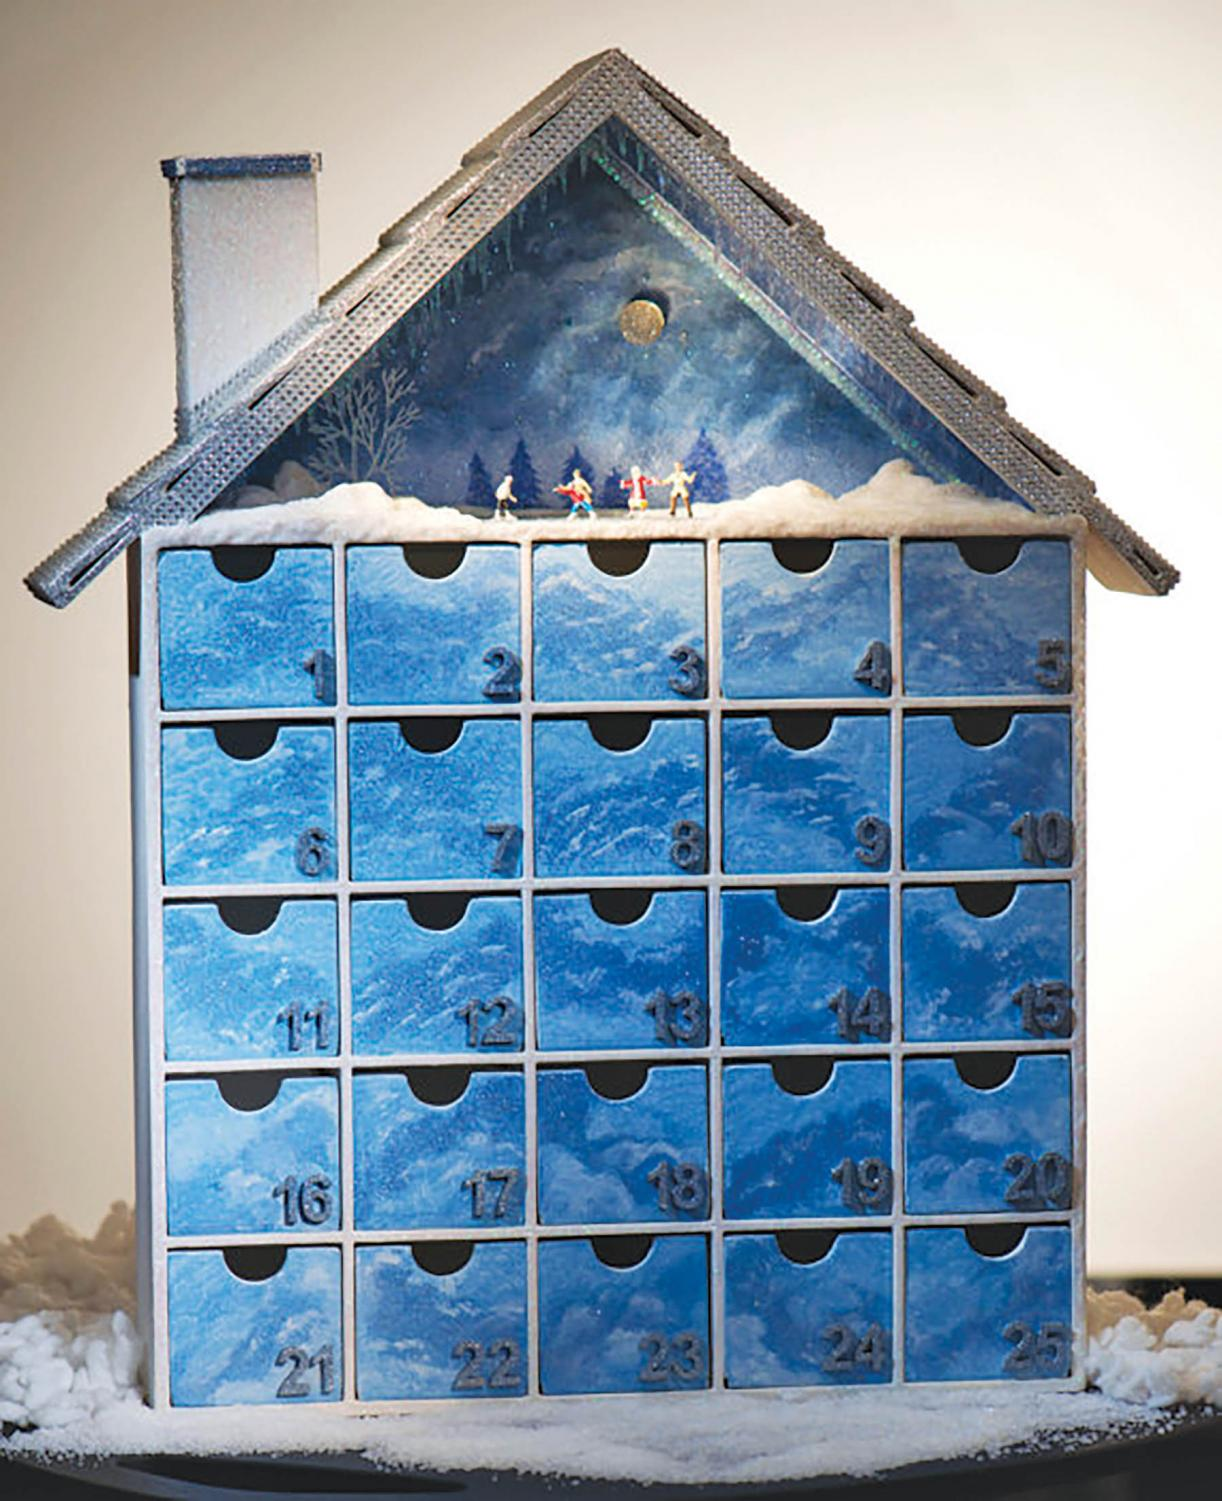 The first known Advent calendar was made in 1851. The traditional treat found under each day is a chocolate candy, but it has expanded over the years.